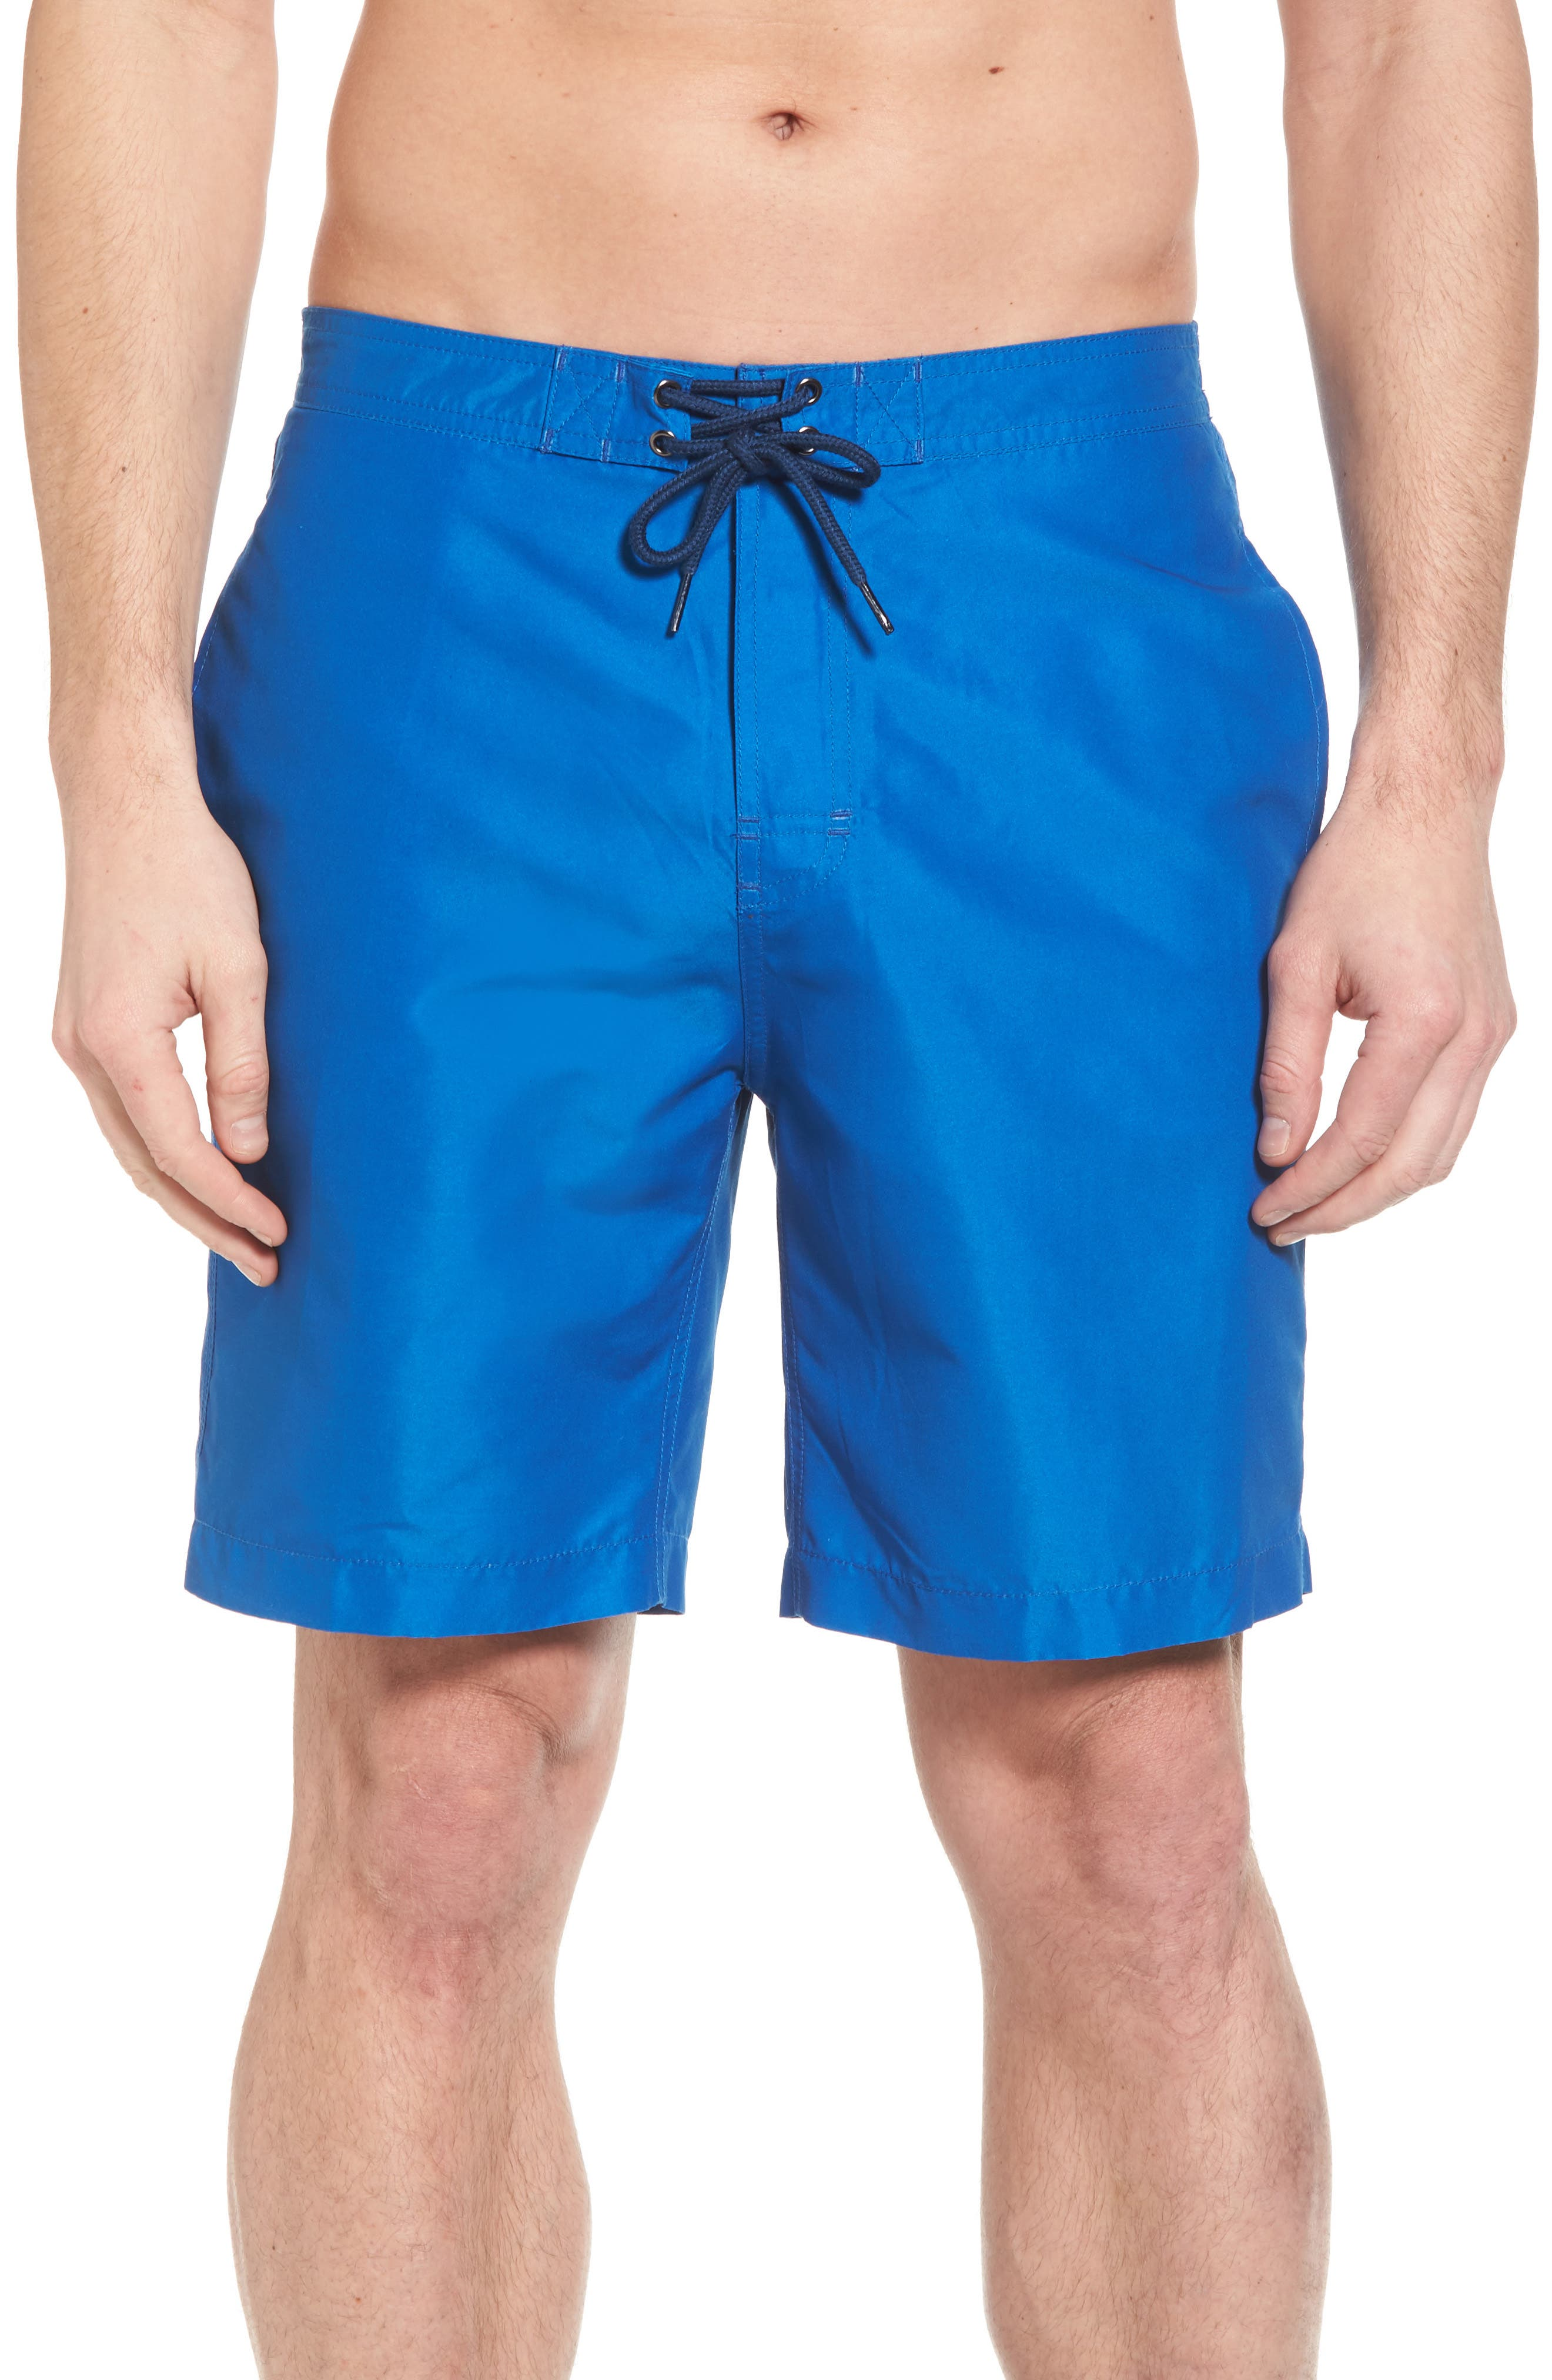 TRUNKS SURF & SWIM CO. SWAMI SOLID BOARD SHORTS